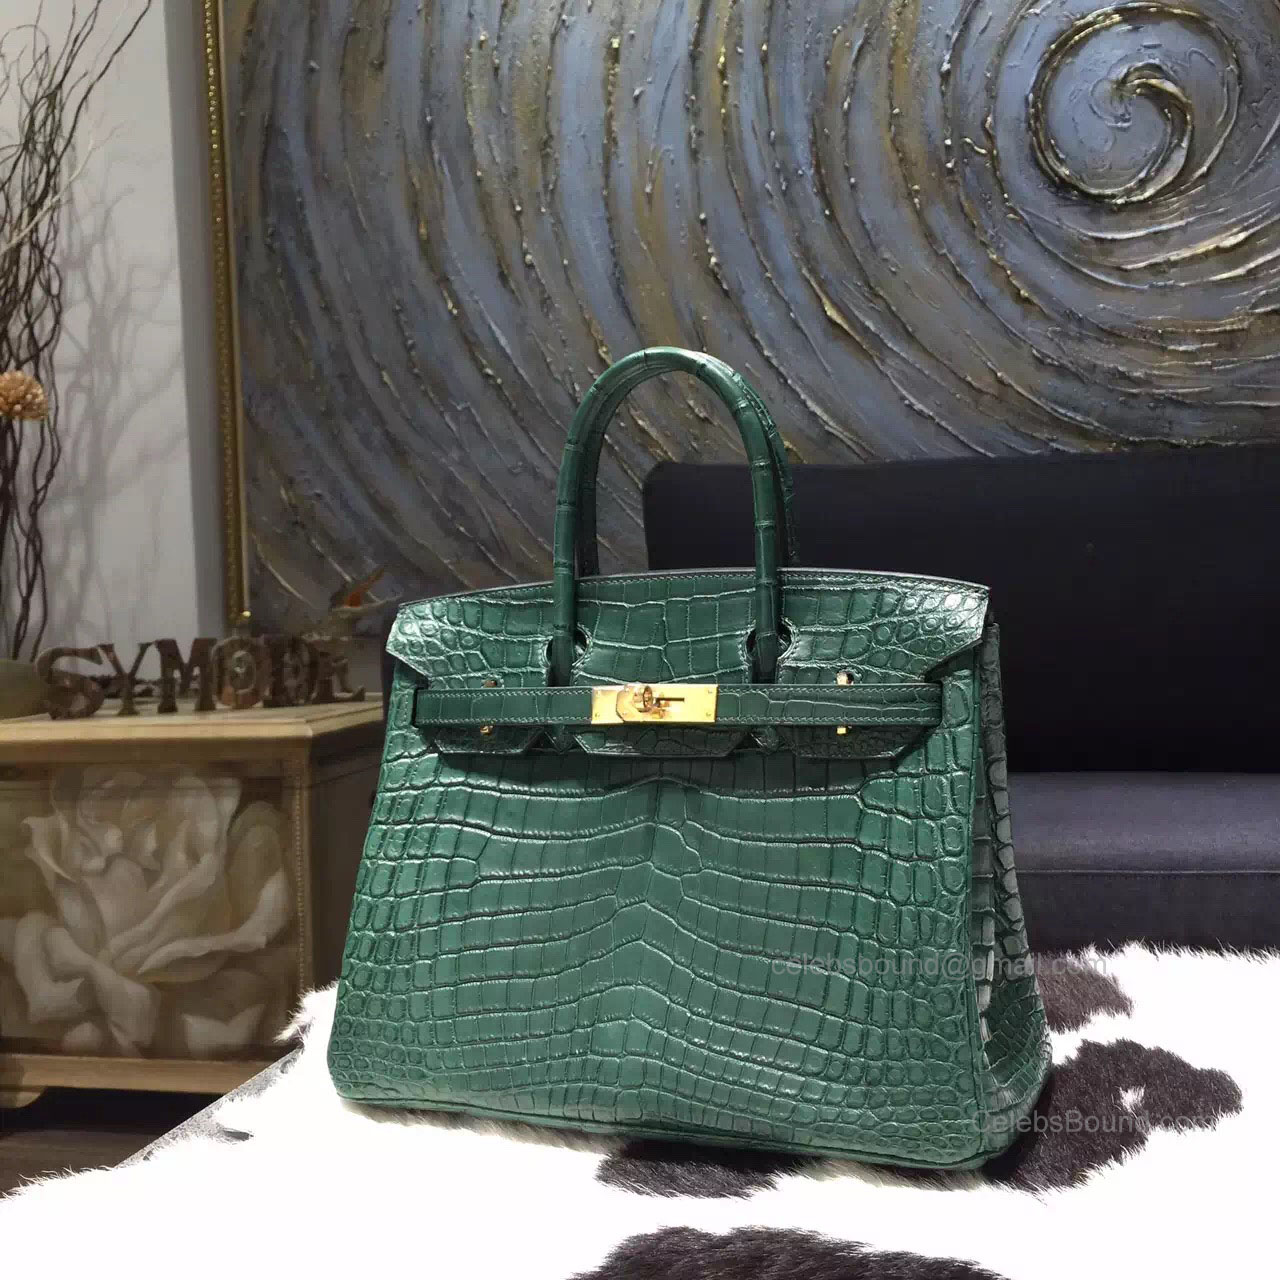 Hermes Birkin 30 Bag Vert Fonce Crocodile Leather Handstitched Gold hw 1ebd66affd2a0